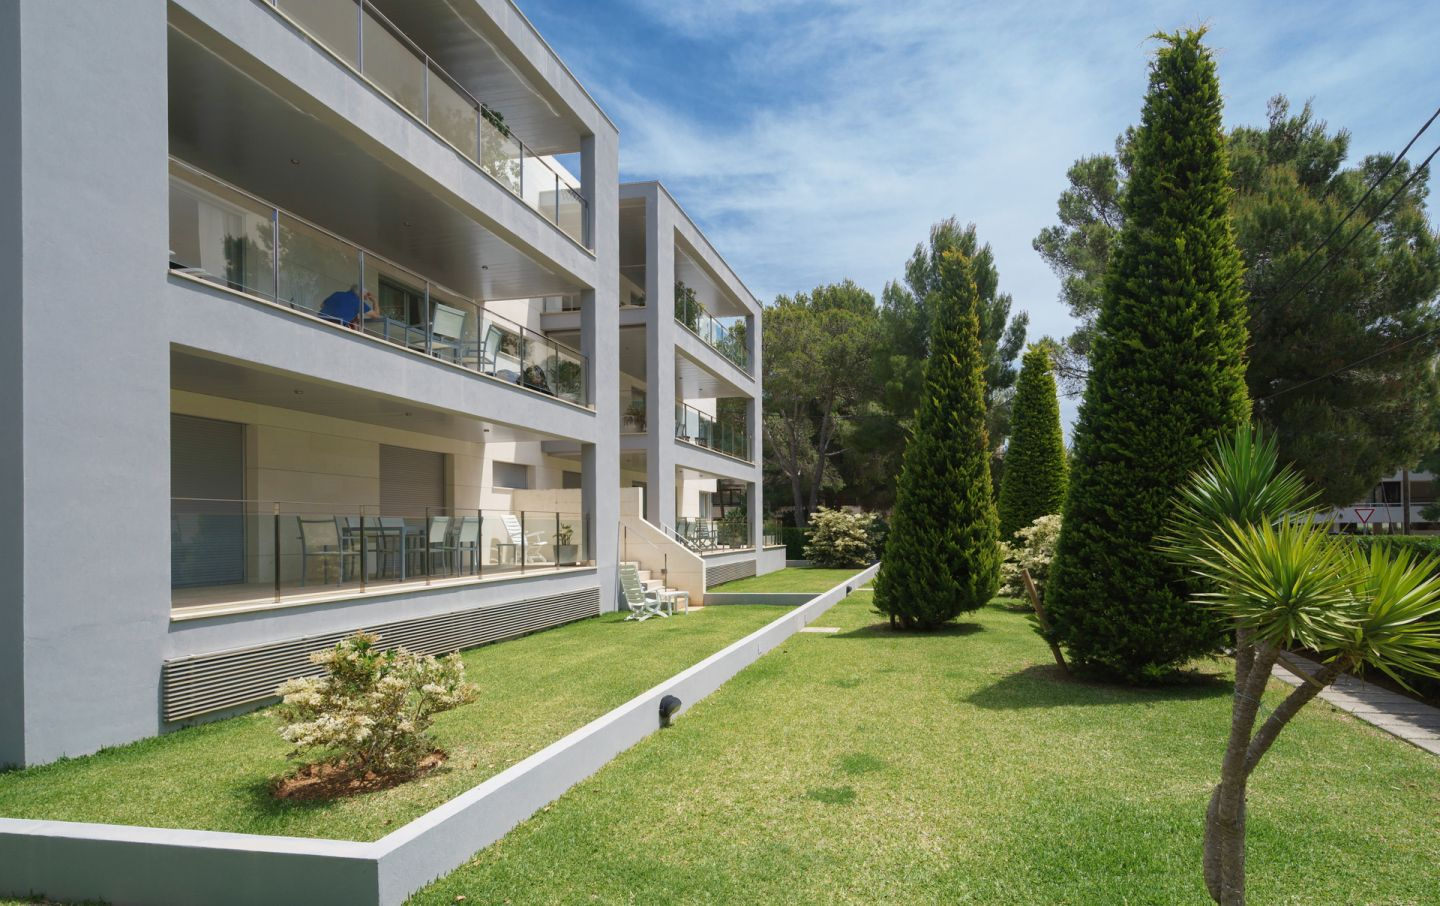 3 Bed Apartment for sale in Puerto Pollensa 17